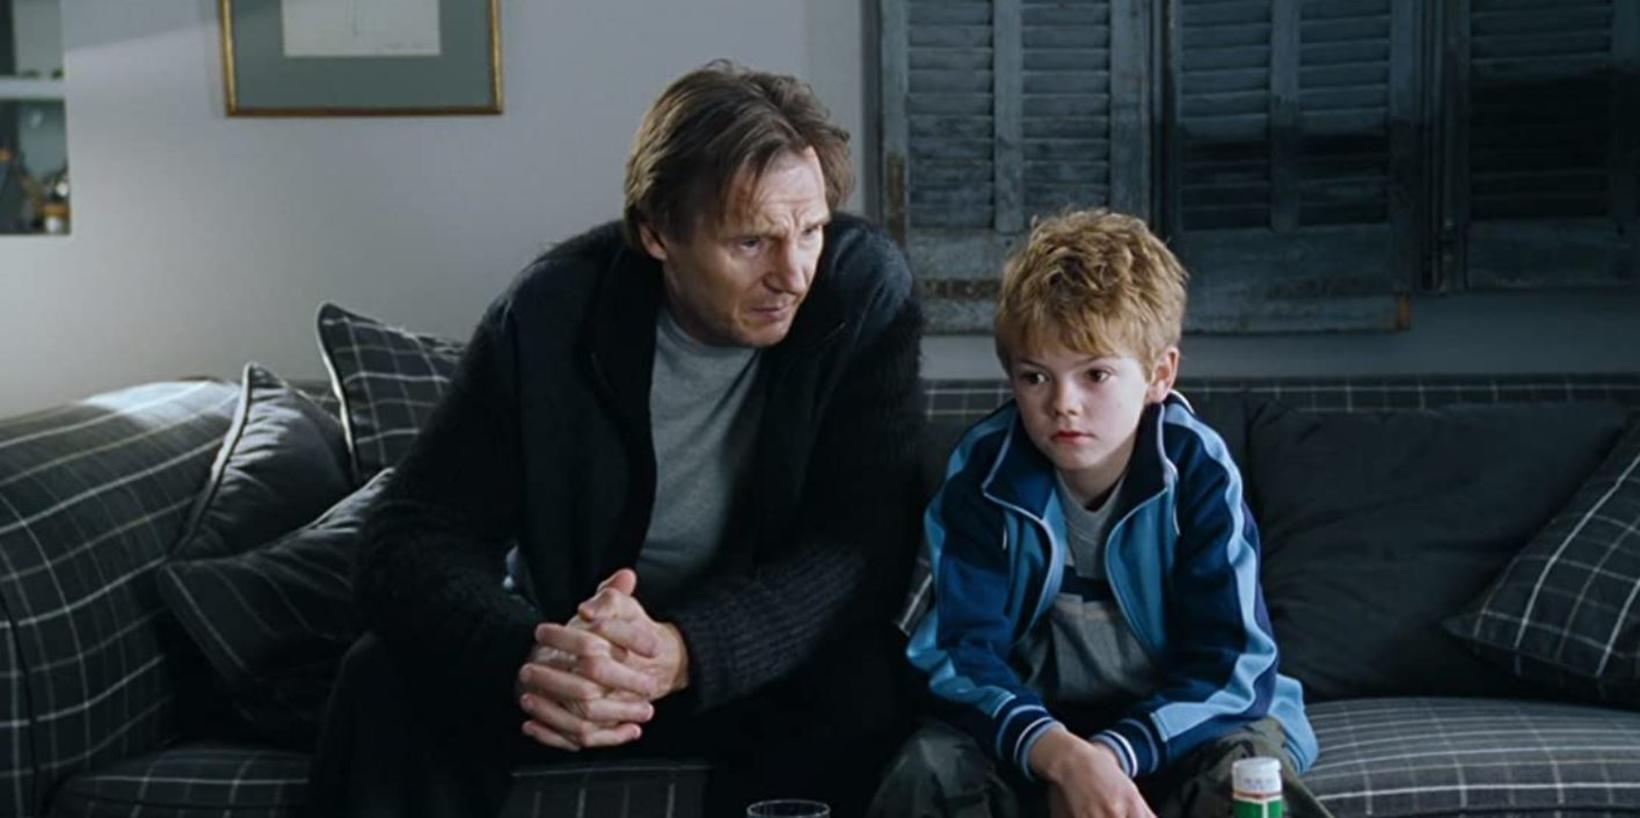 Thomas Brodie-Sangster lék son Liam Neeson í Love Actually.